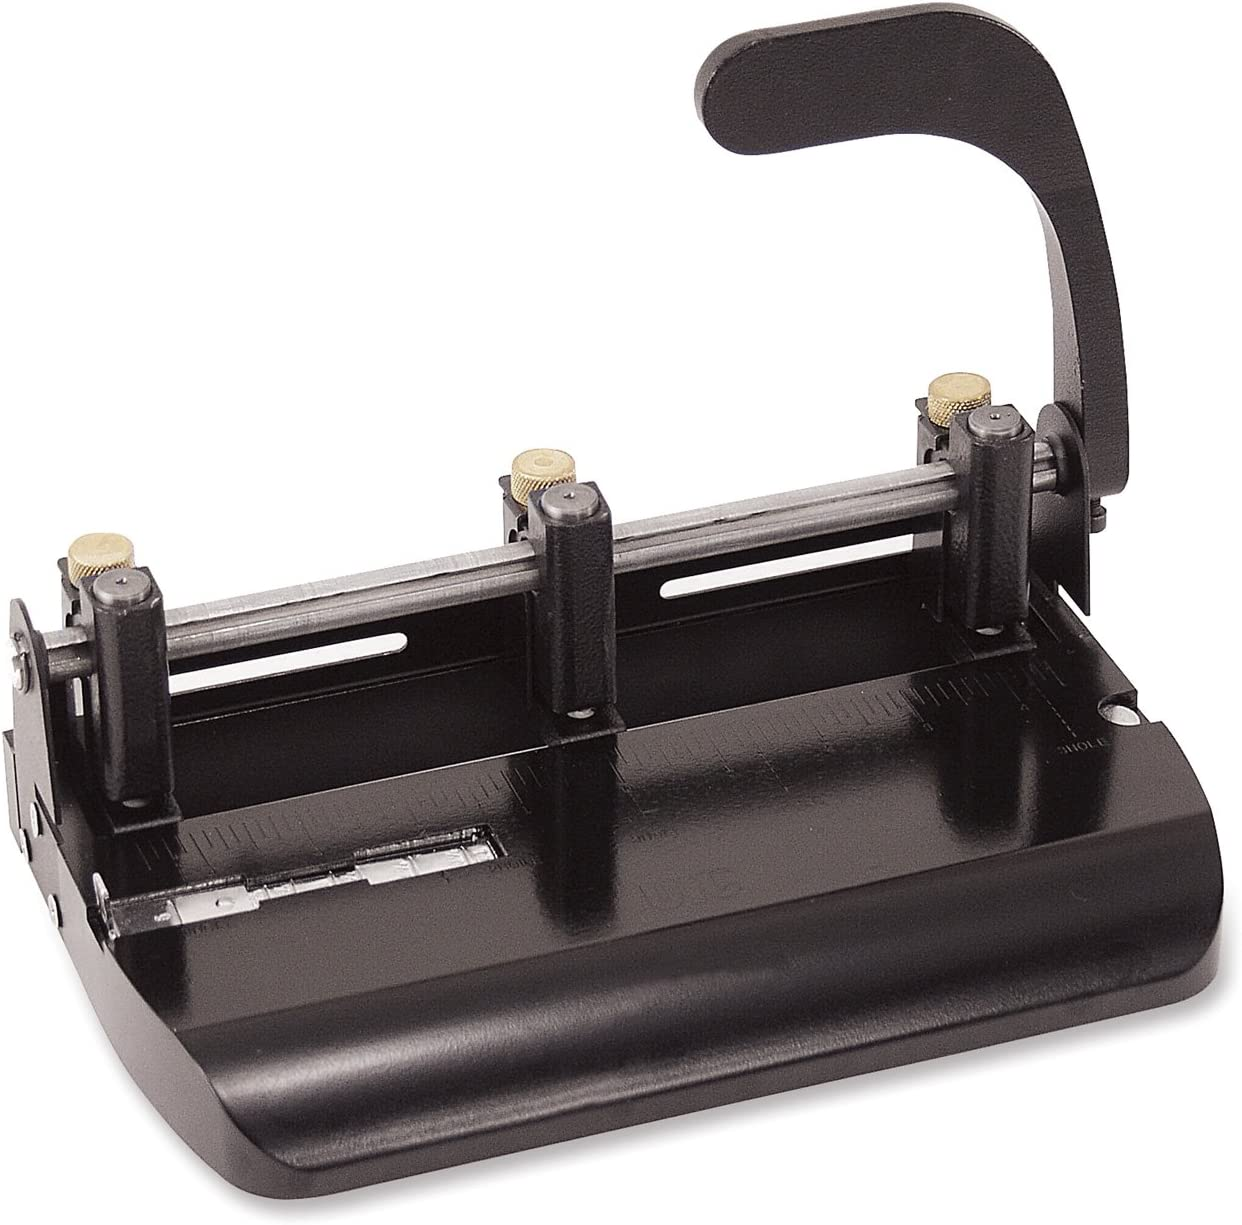 B00009L1WG Officemate Heavy Duty Adjustable 2-3 Hole Punch with Lever Handle, 32-Sheet Capacity, Black (90078) 71OSNEytHEL